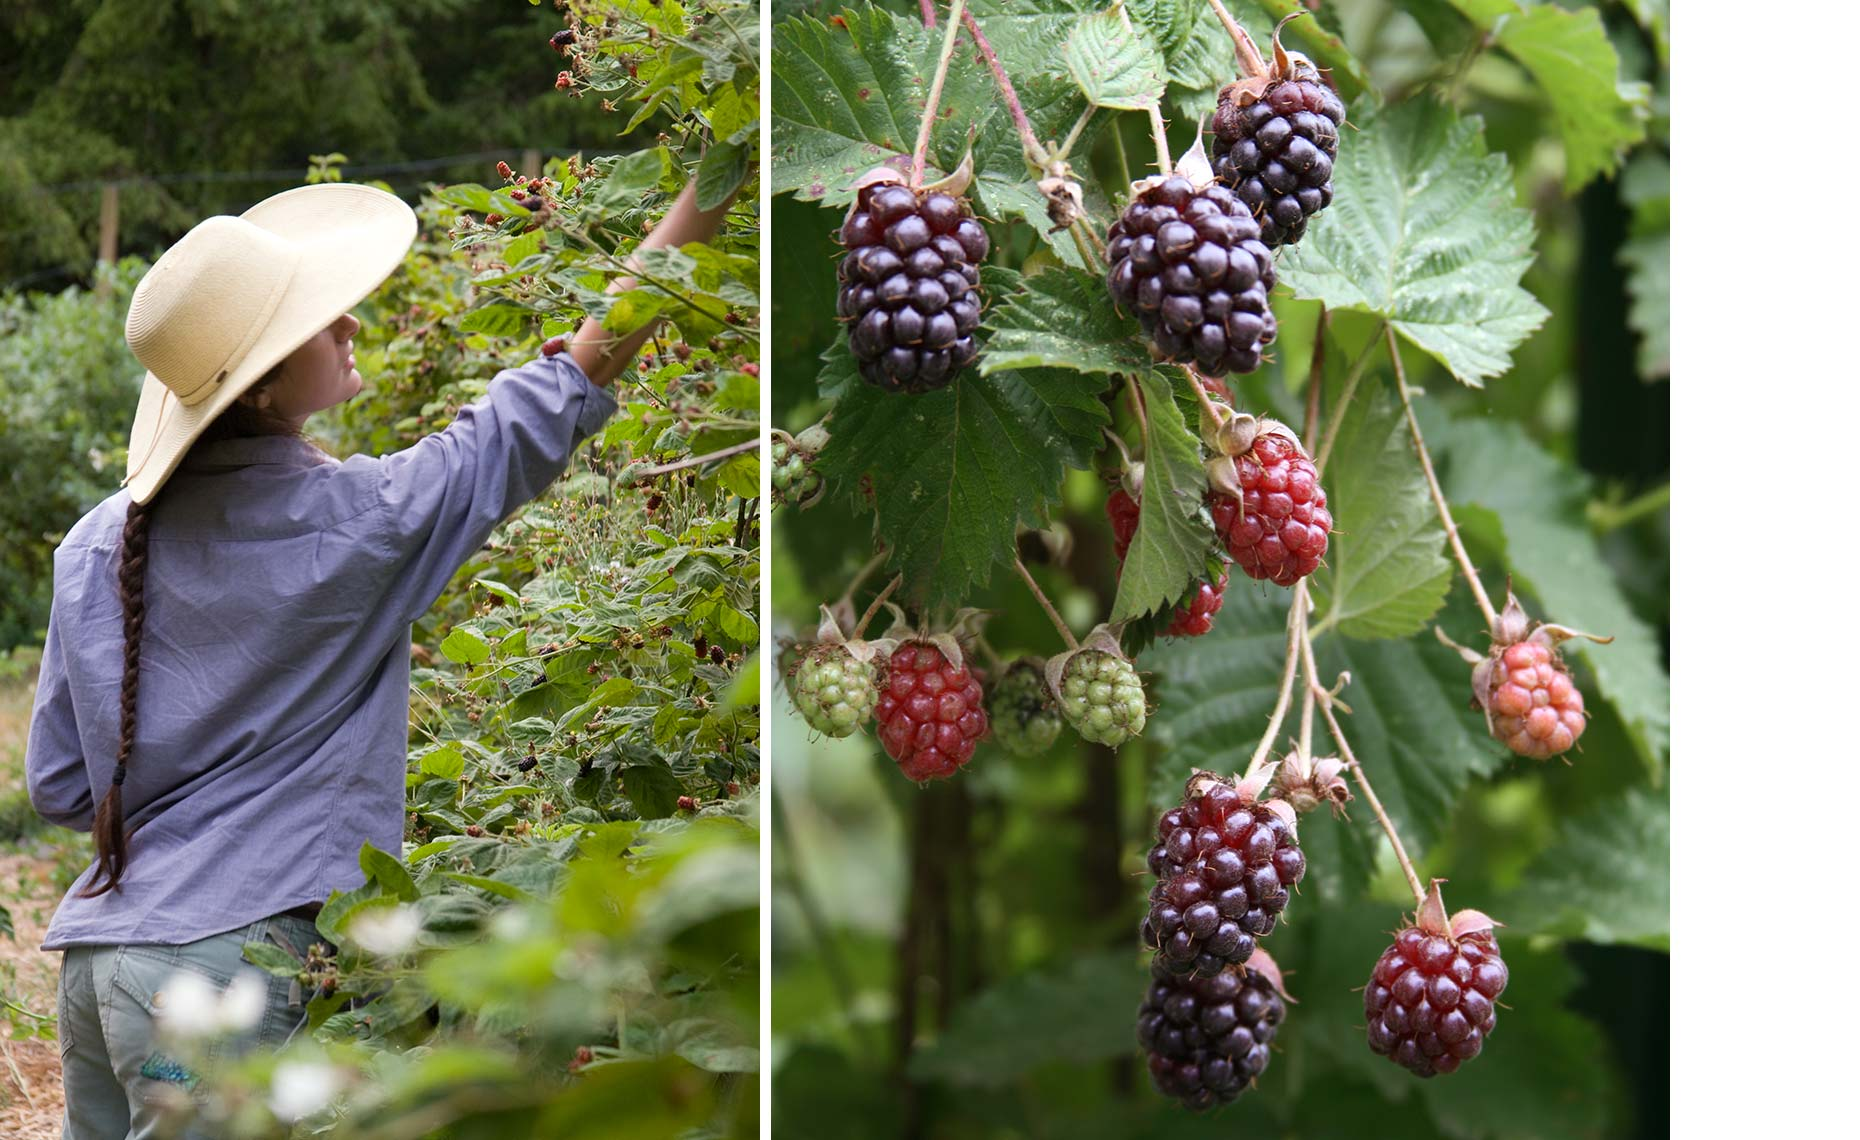 8-18_Nordeck_picking_berries